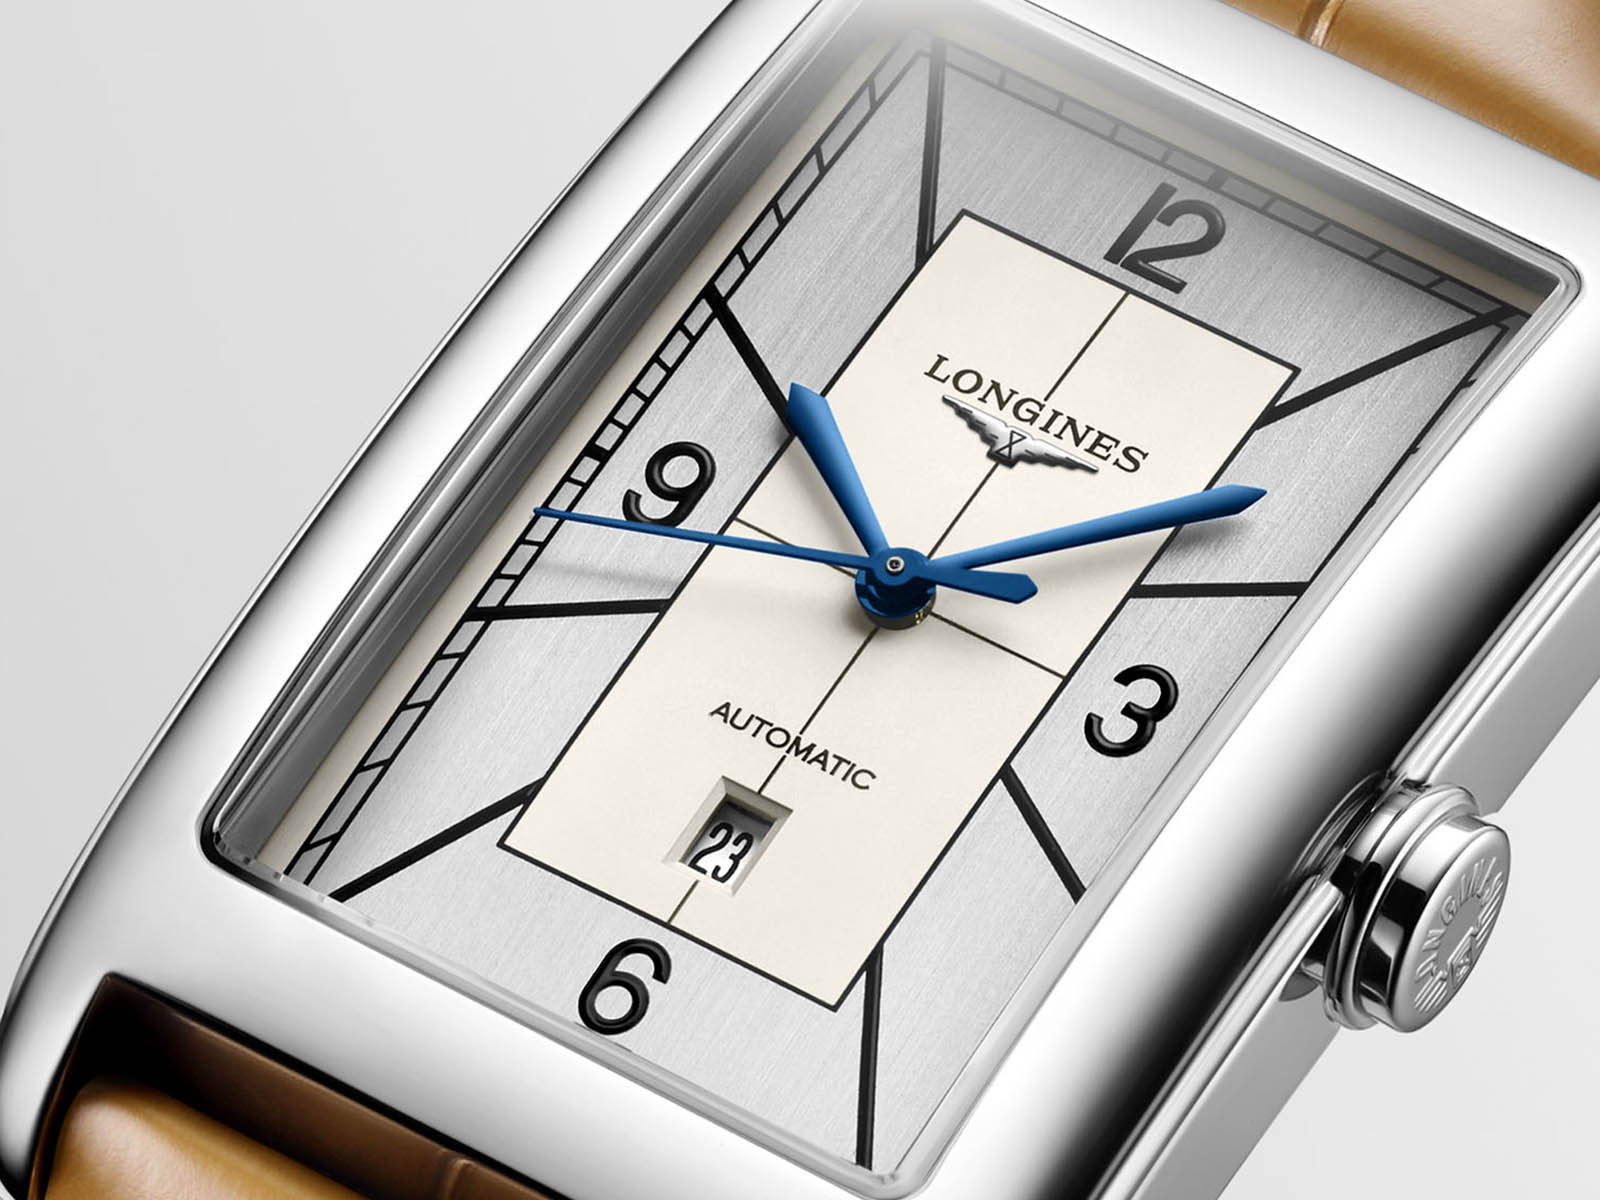 l5-767-4-73-0-longines-dolcevita-automatic-art-deco-sector-dial-2.jpg